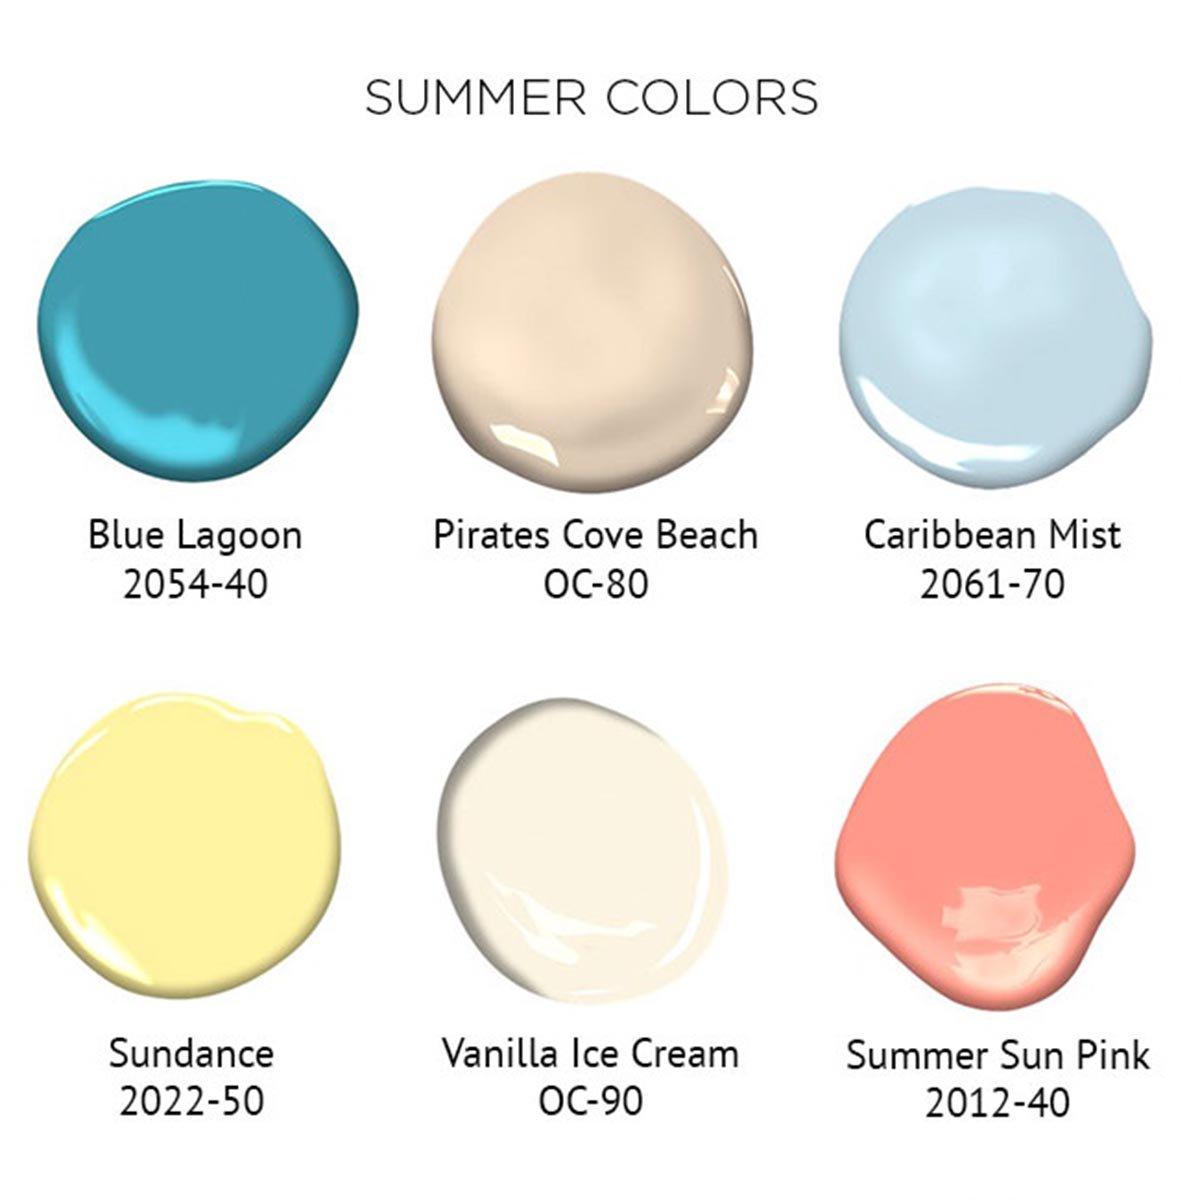 Benjamin Moore On Twitter Extend Summer In Your Home With These Tropical Hues